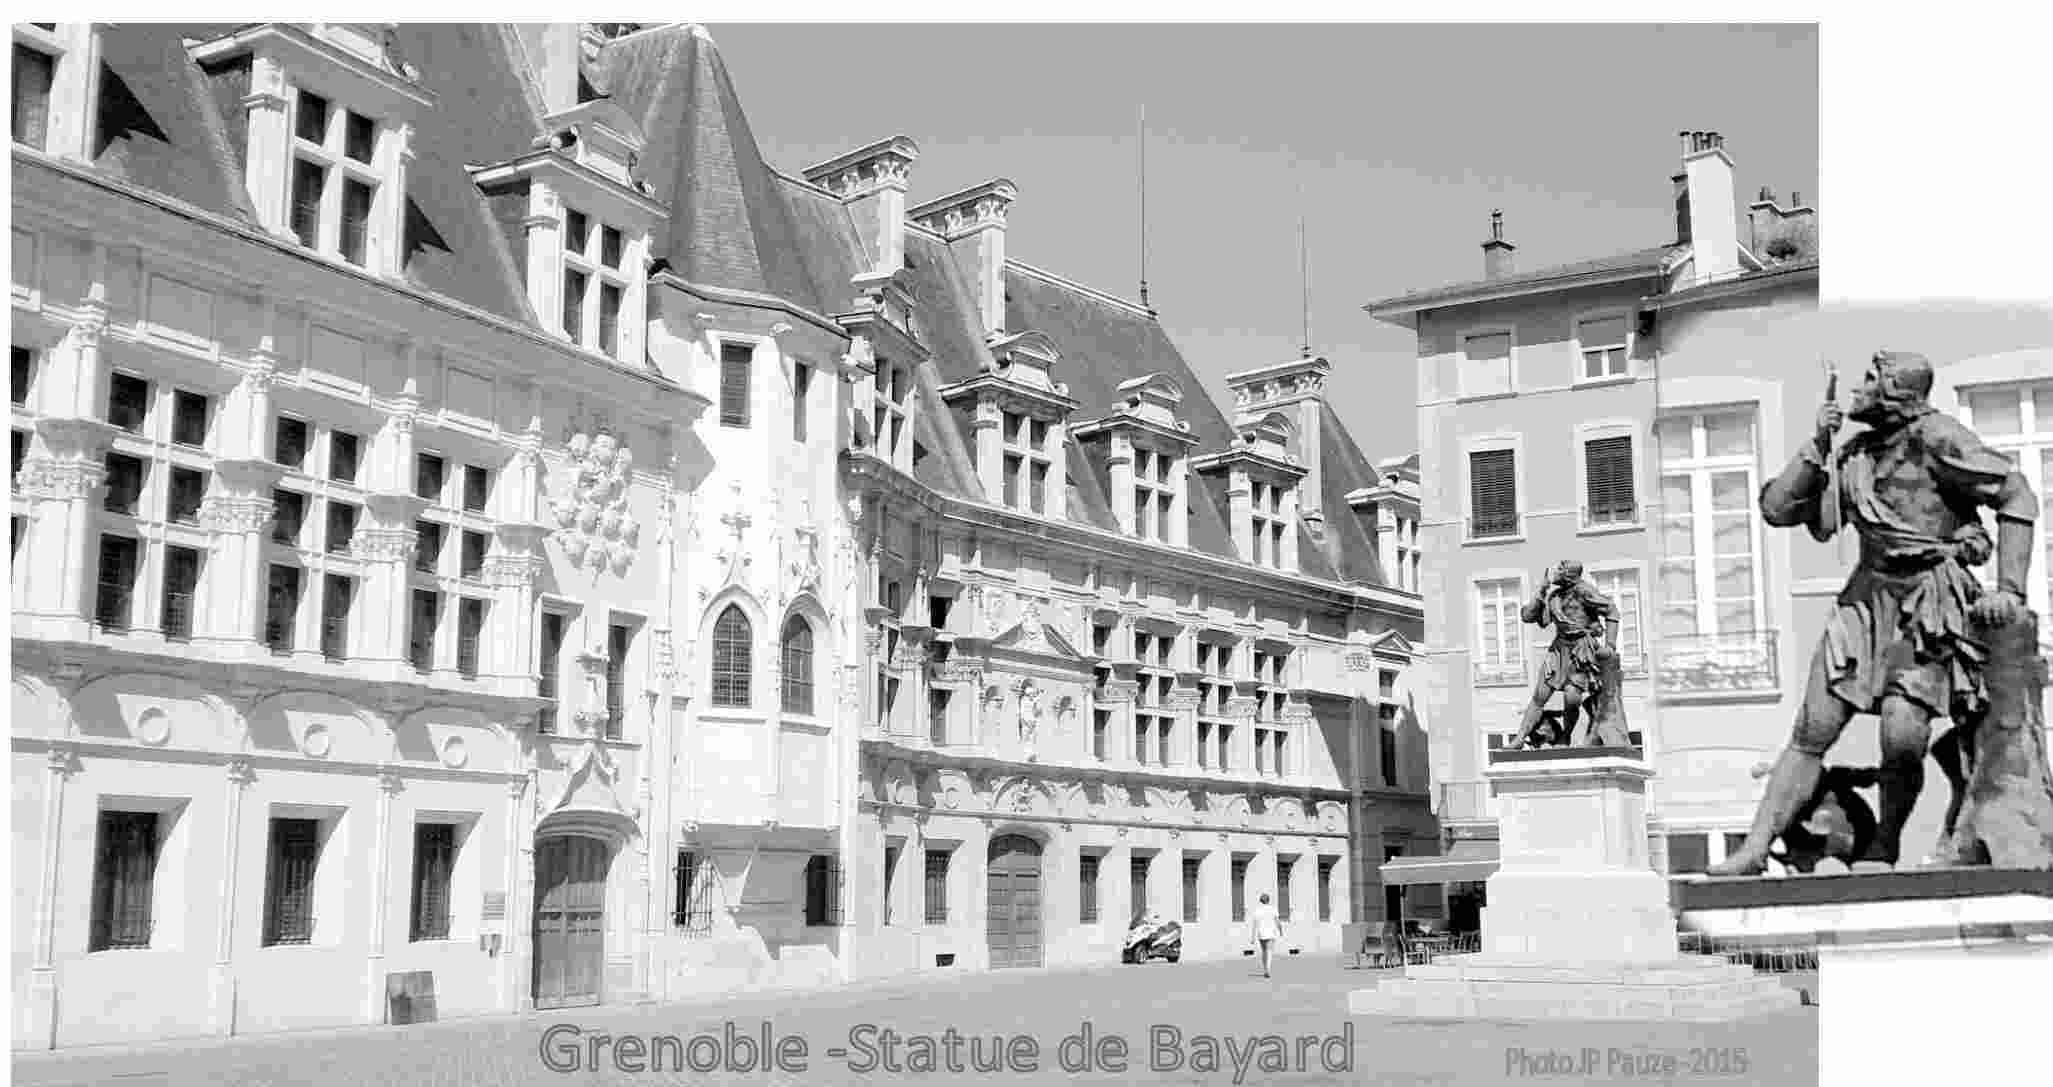 ph-150805-grenoble-bayard_0006b